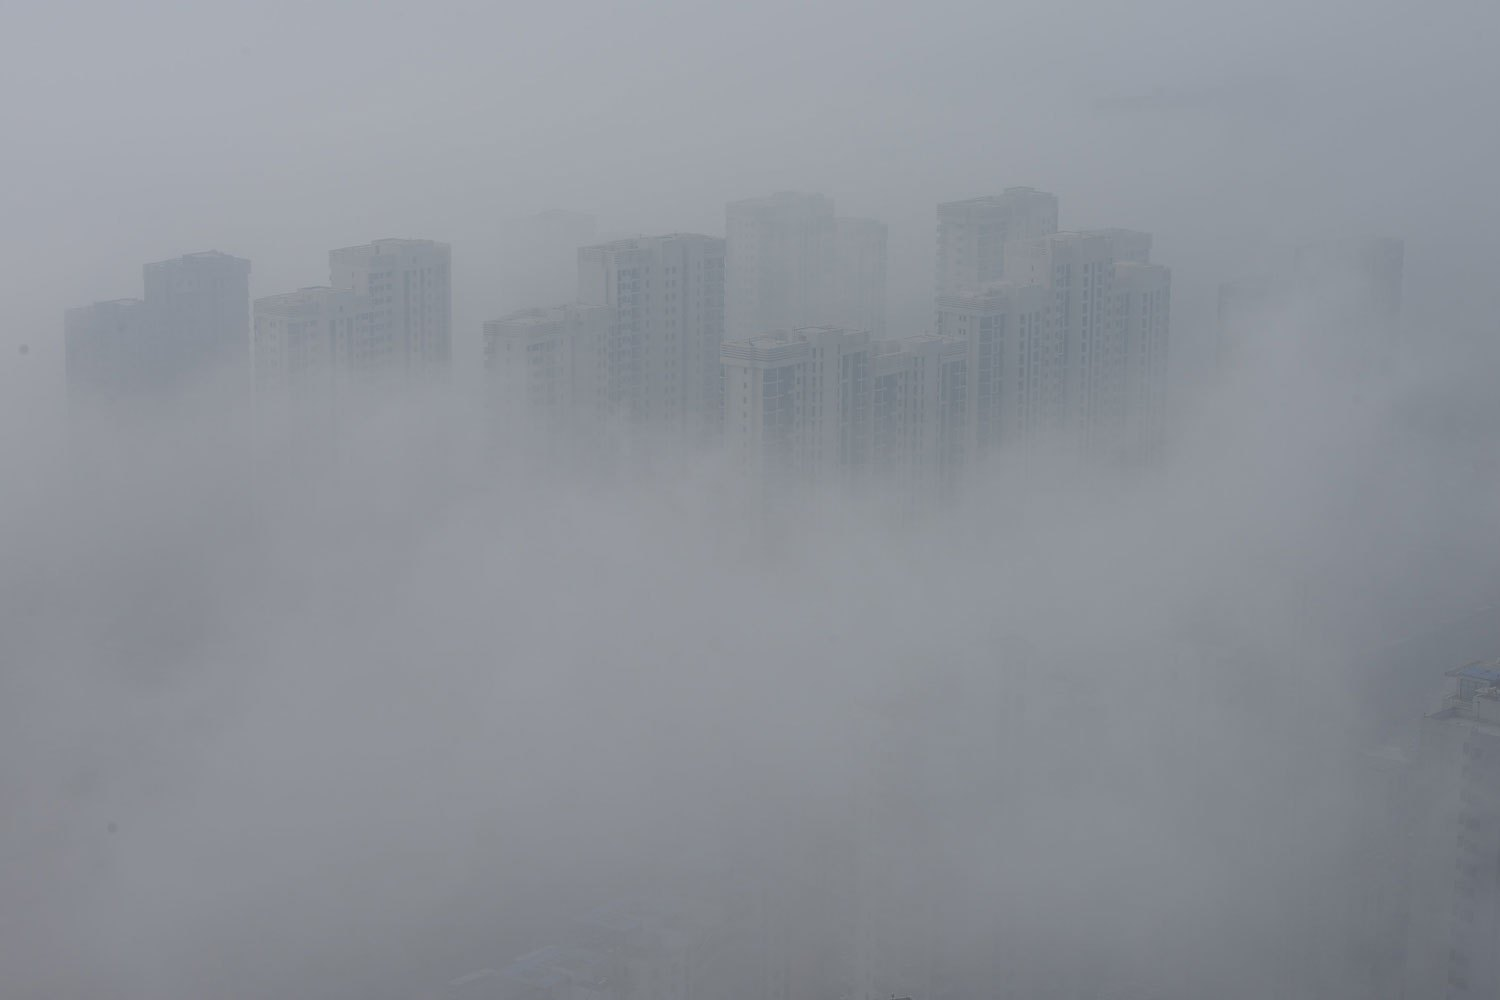 BESTPIX - Heavy Smog Envelopes China